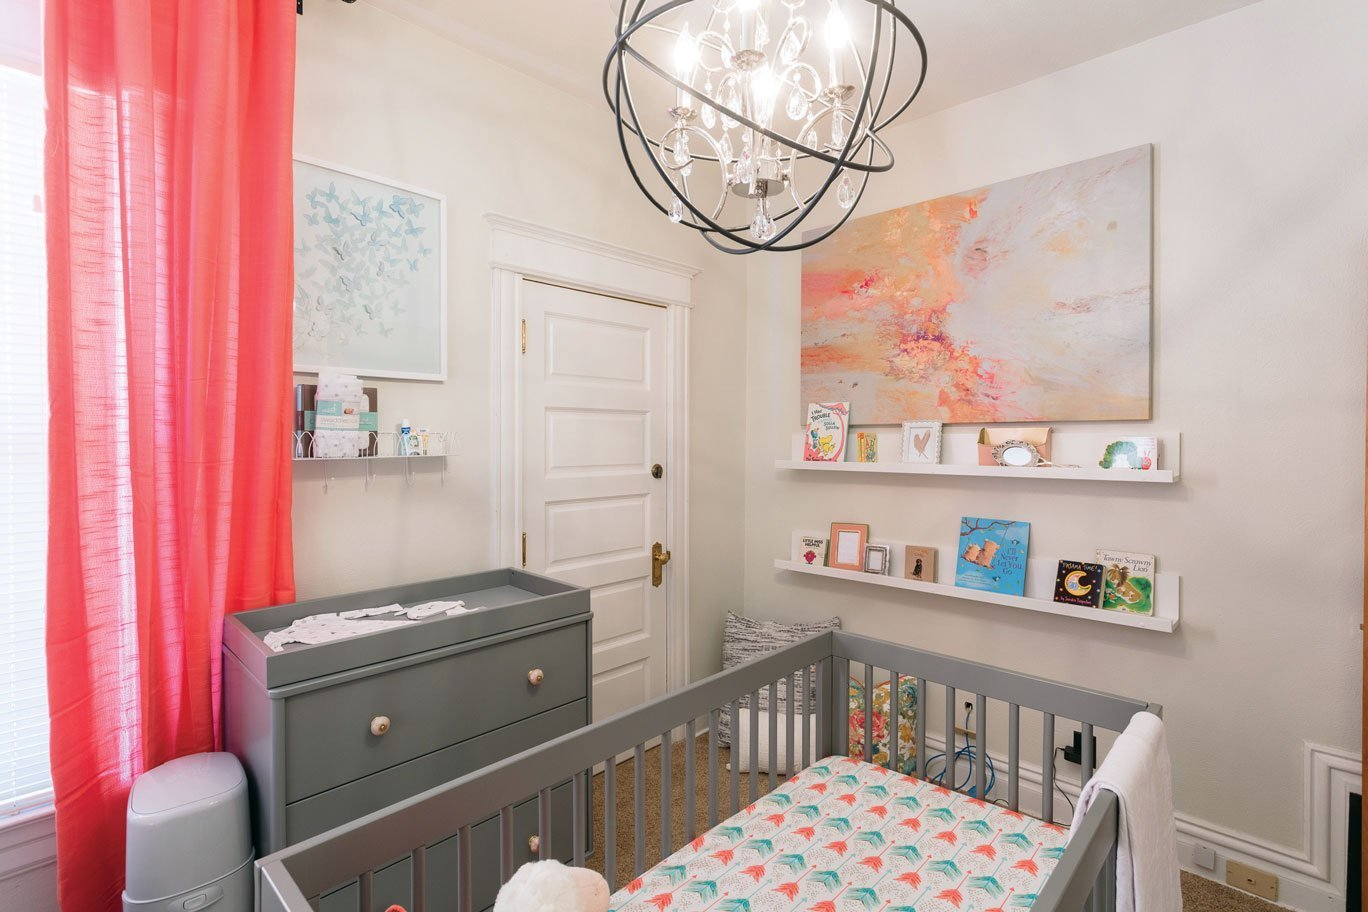 Nursery window, crib, and ceiling light.